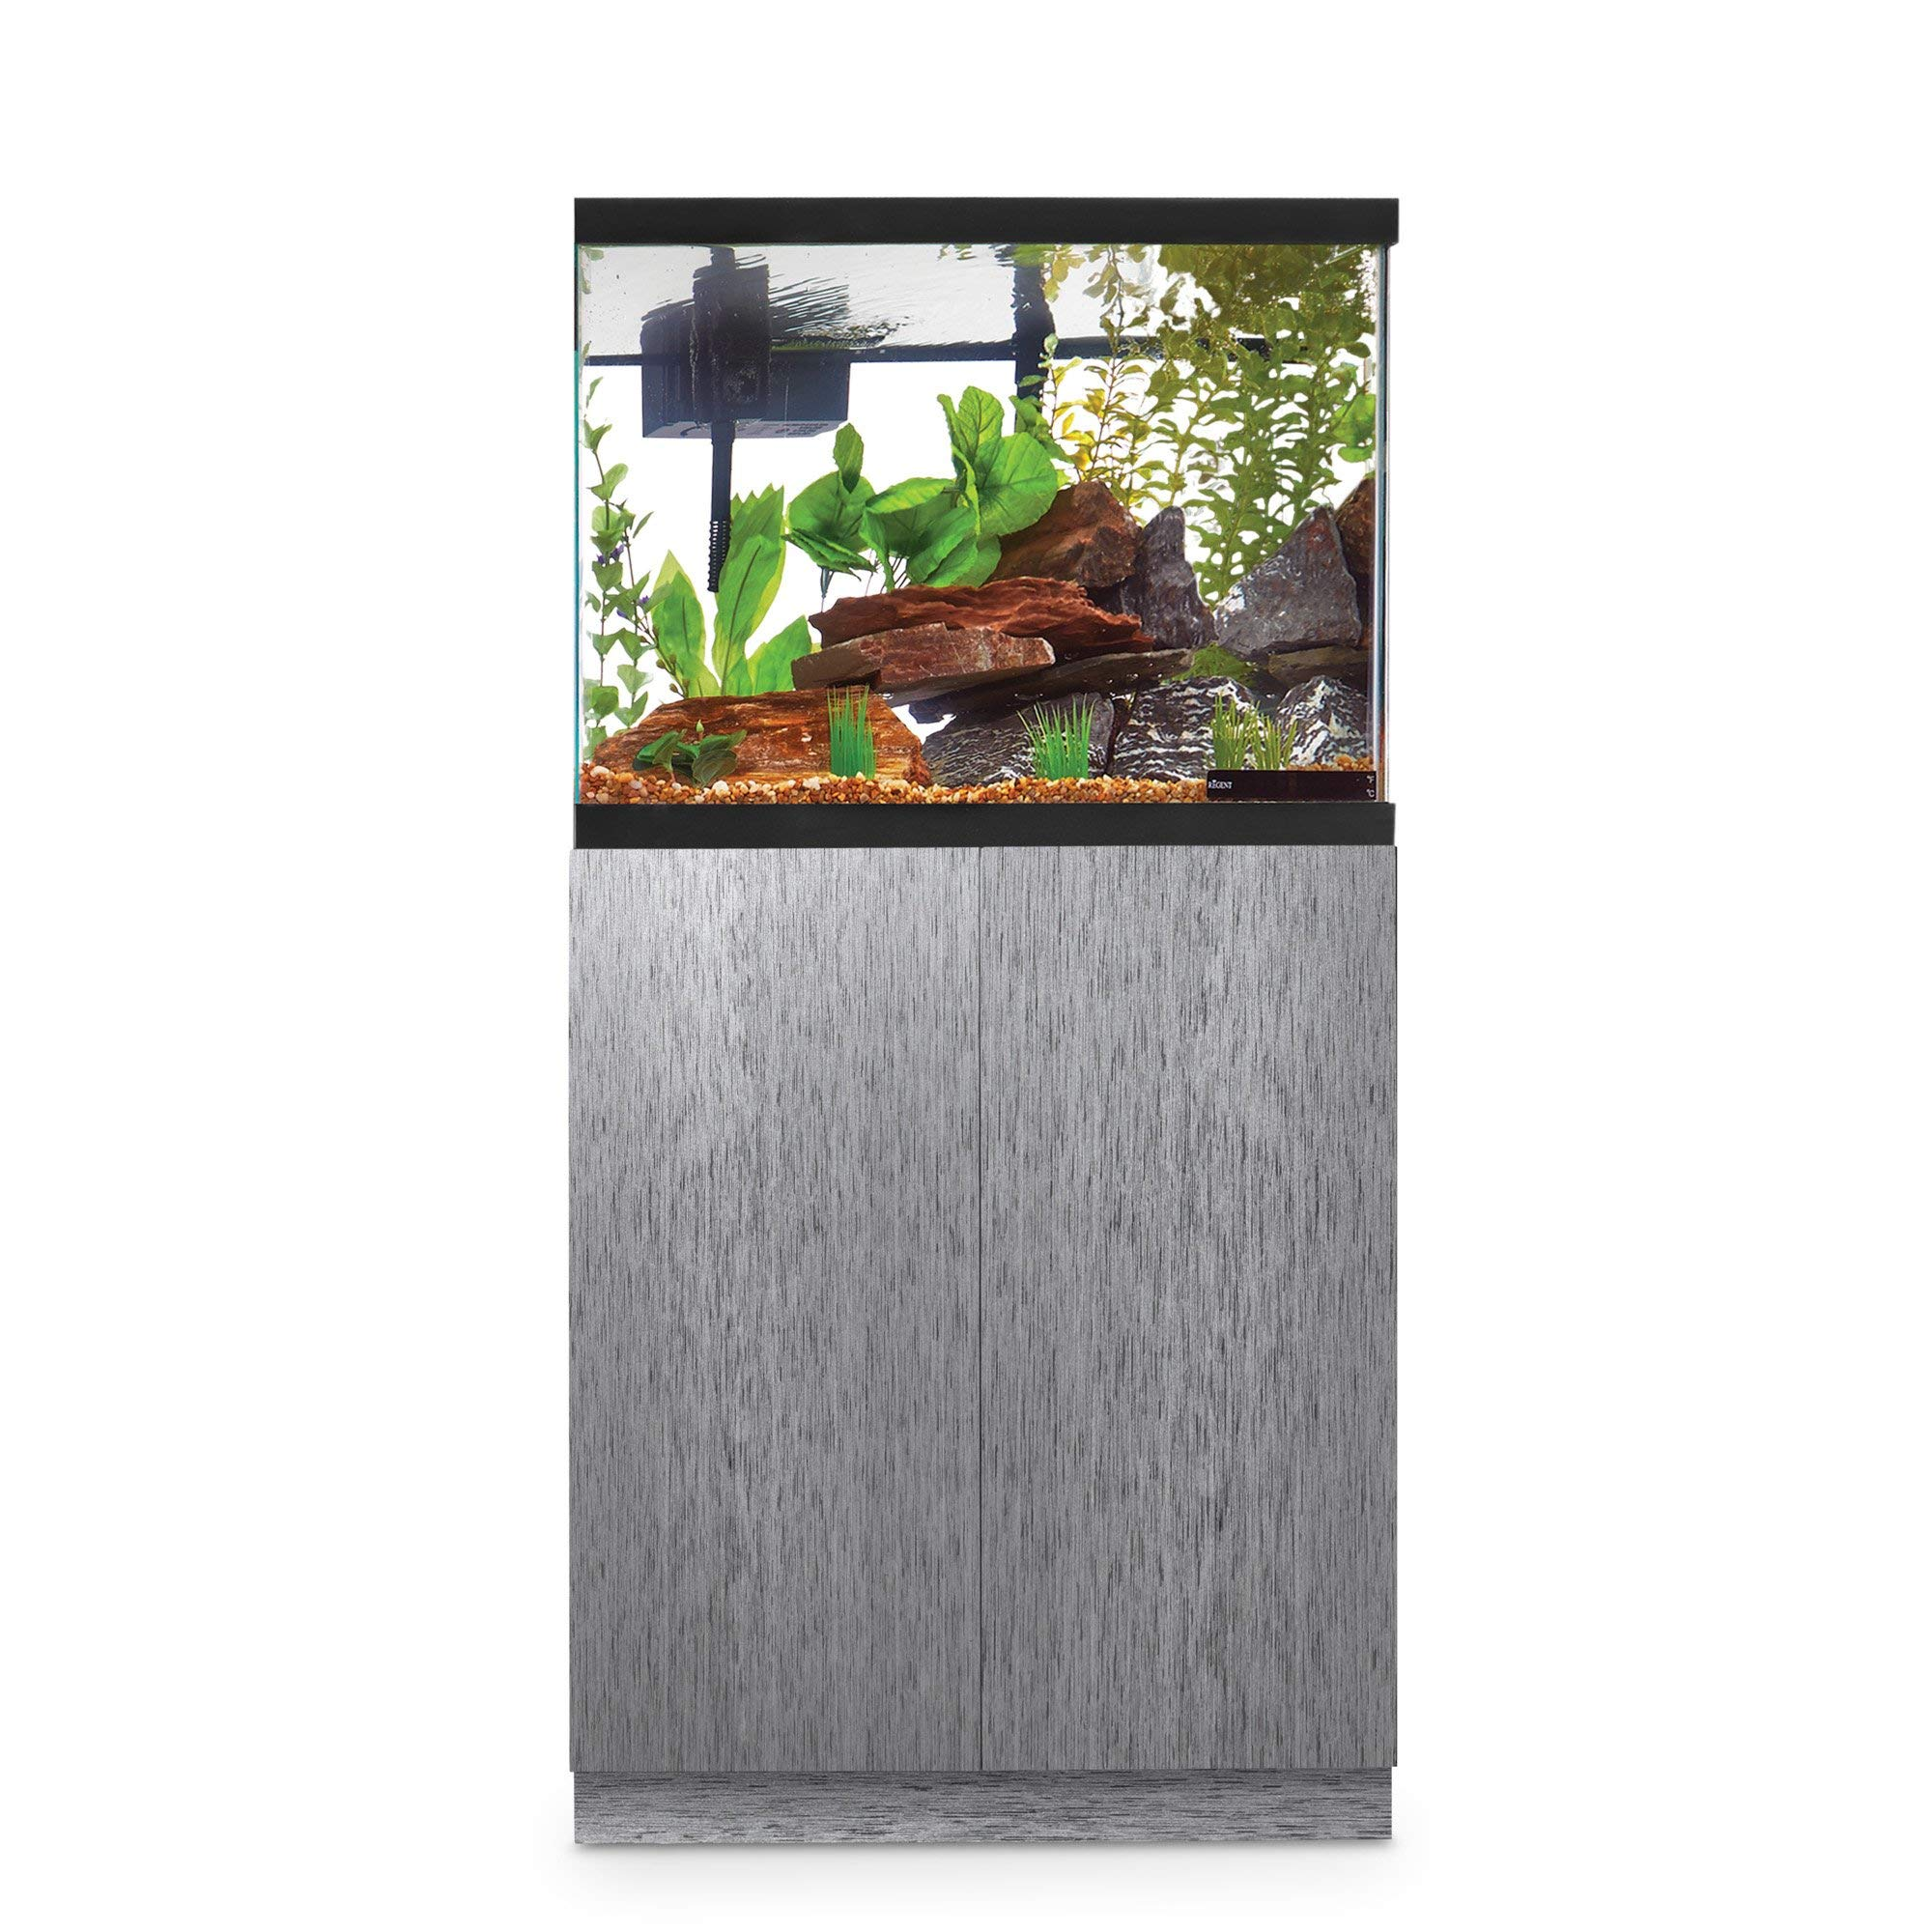 Imagitarium Brushed Steel Look Fish Tank Stand, Up to 29 Gal, 12.25 in